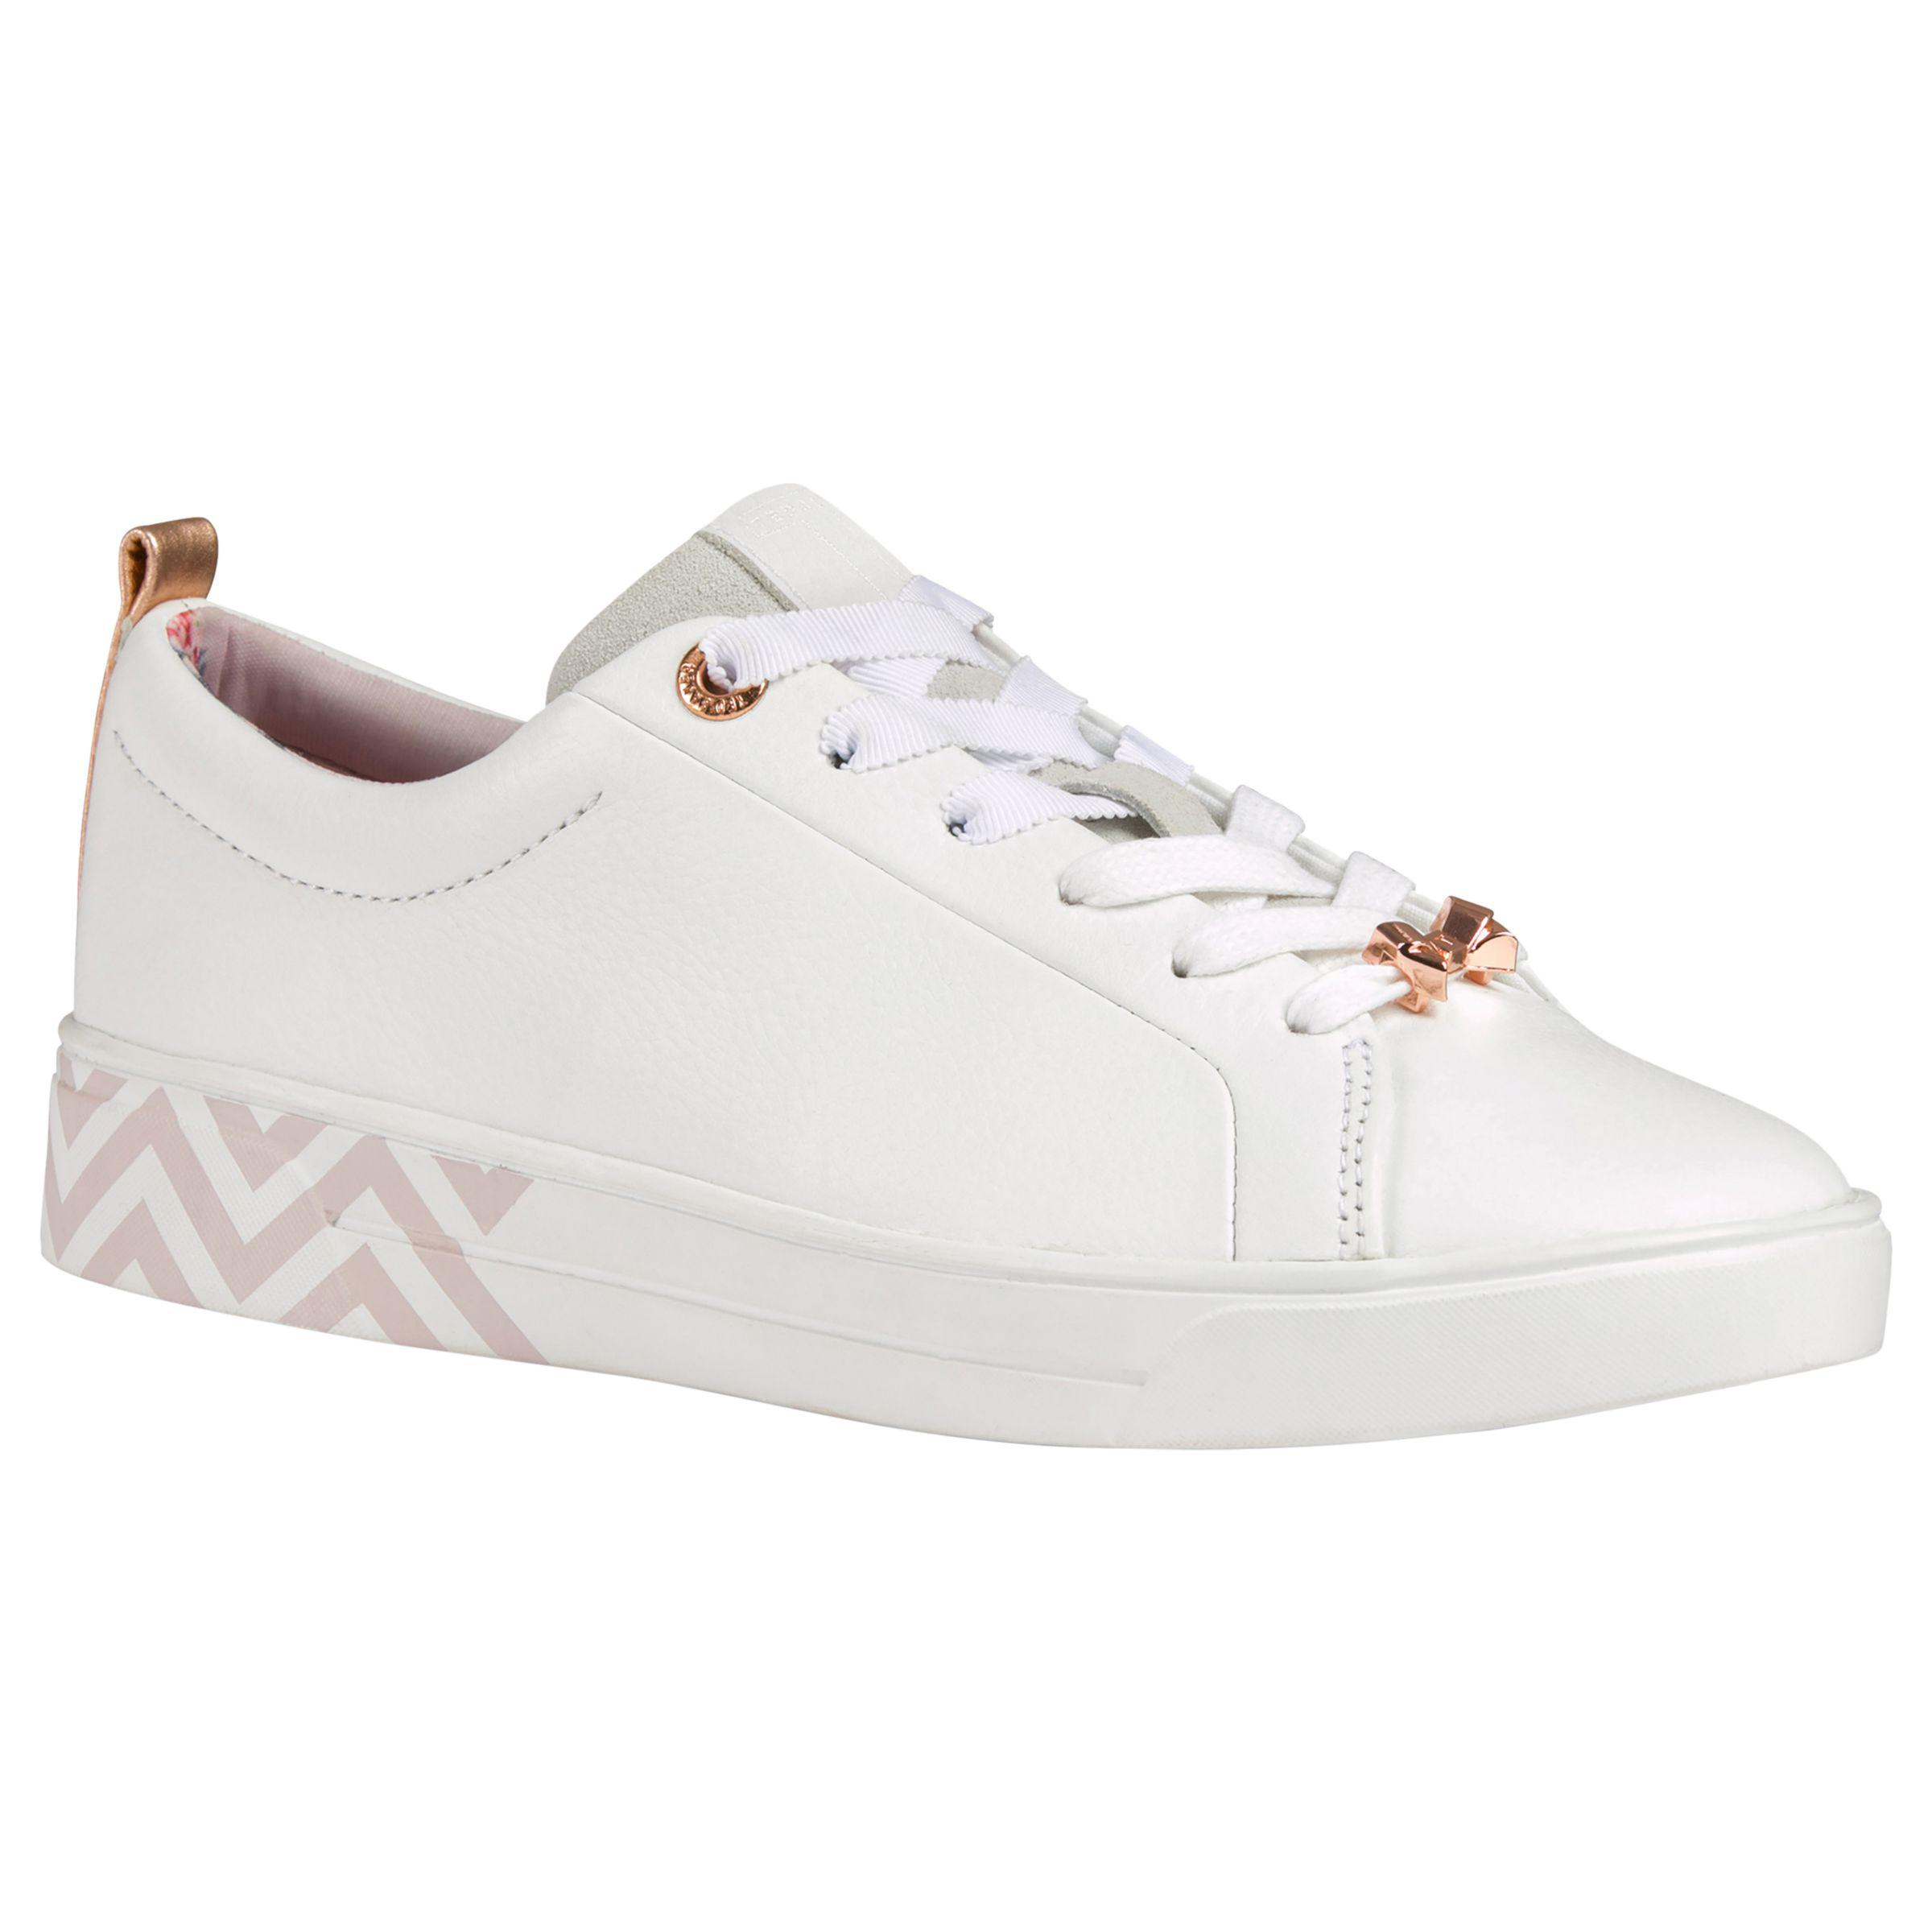 781a3c500718d1 Ted Baker Kelleip Low Top Trainers in White - Lyst